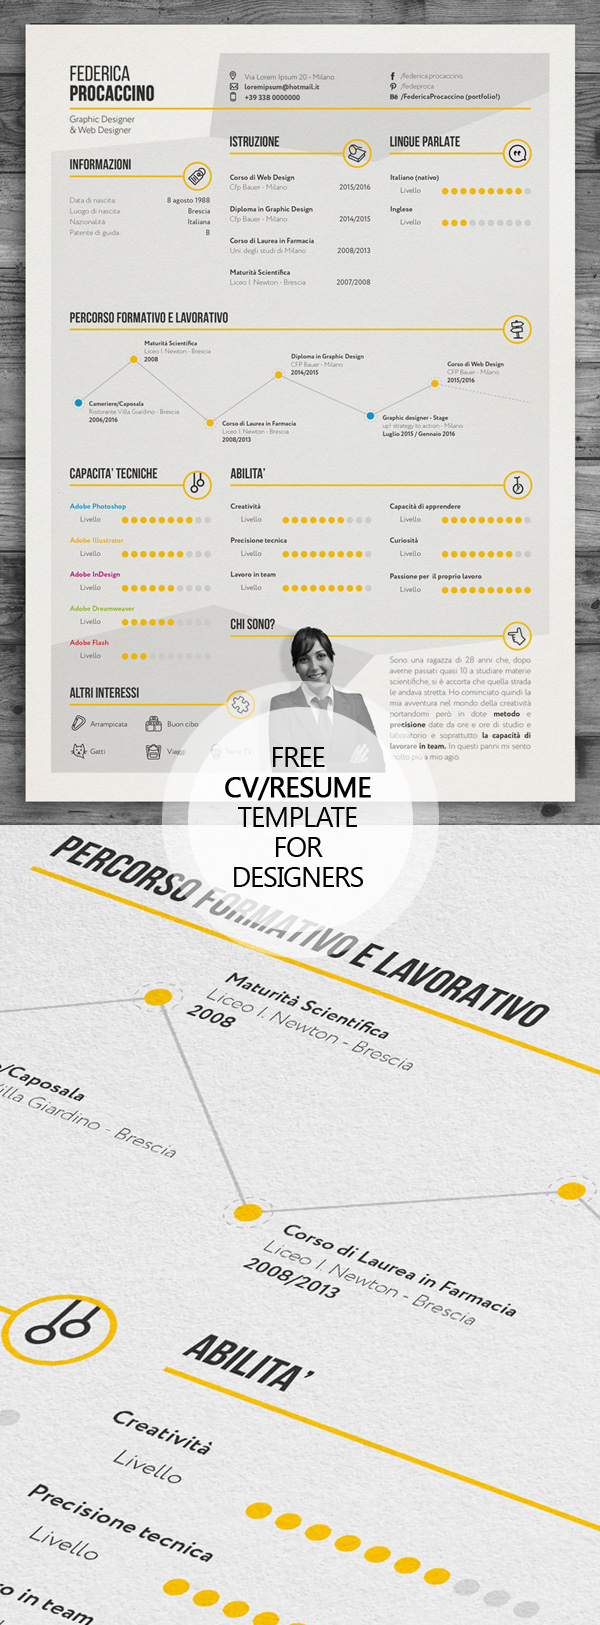 15 psd cv resume and cover letter templates bies creative lancer designer resume template psd